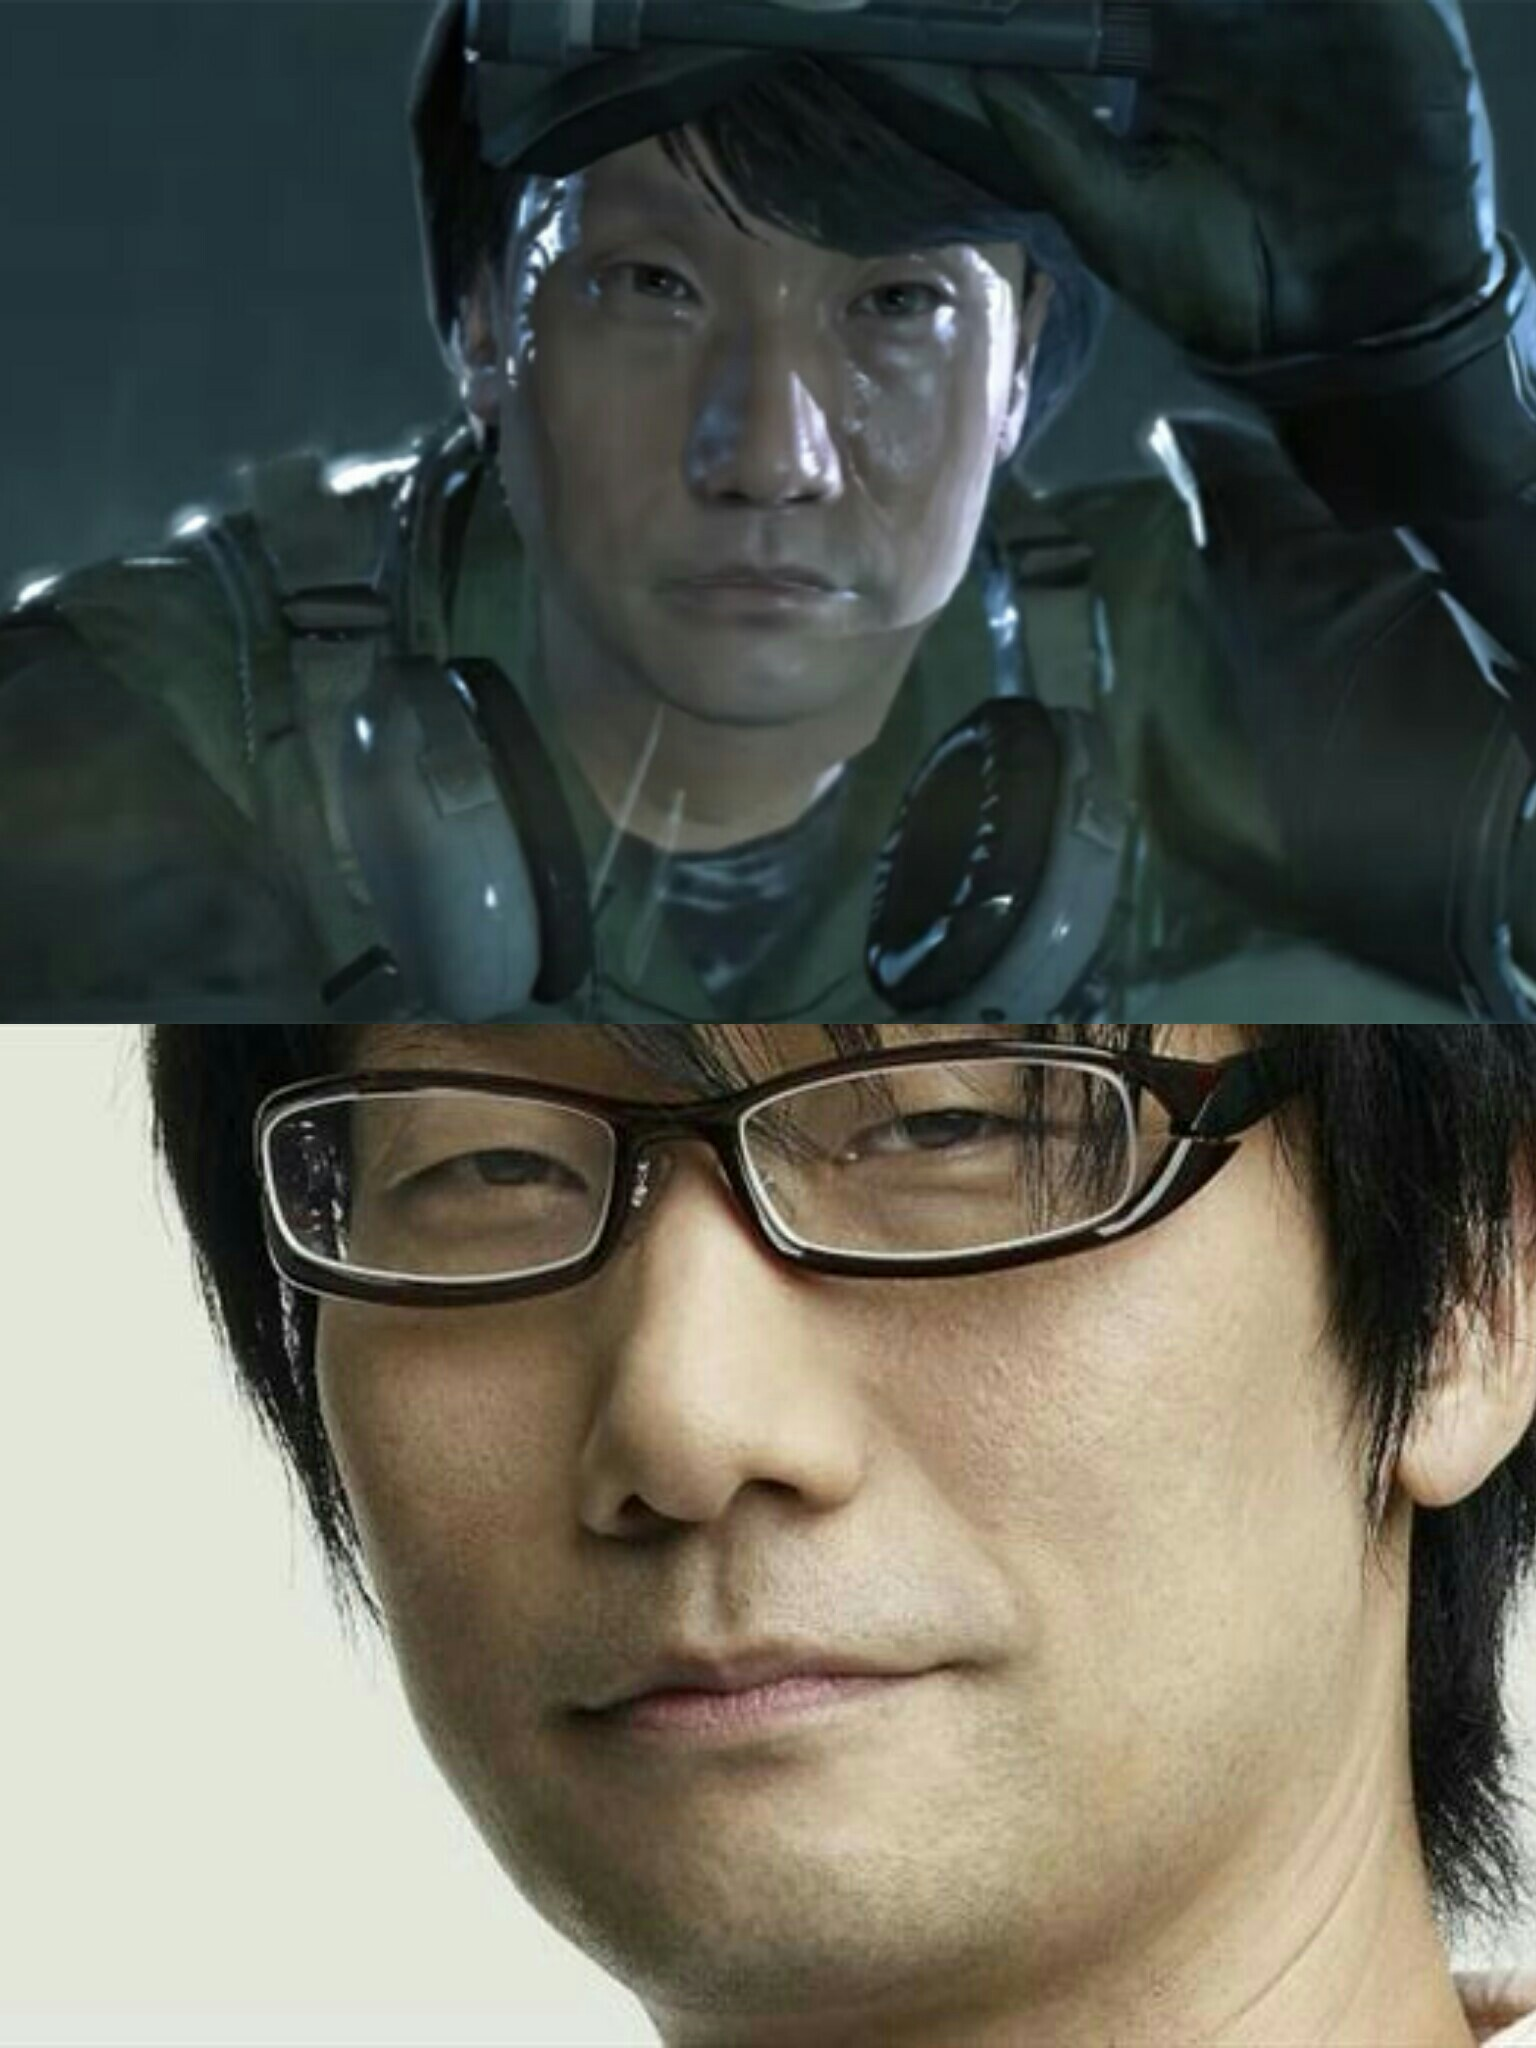 Developer game Kojima